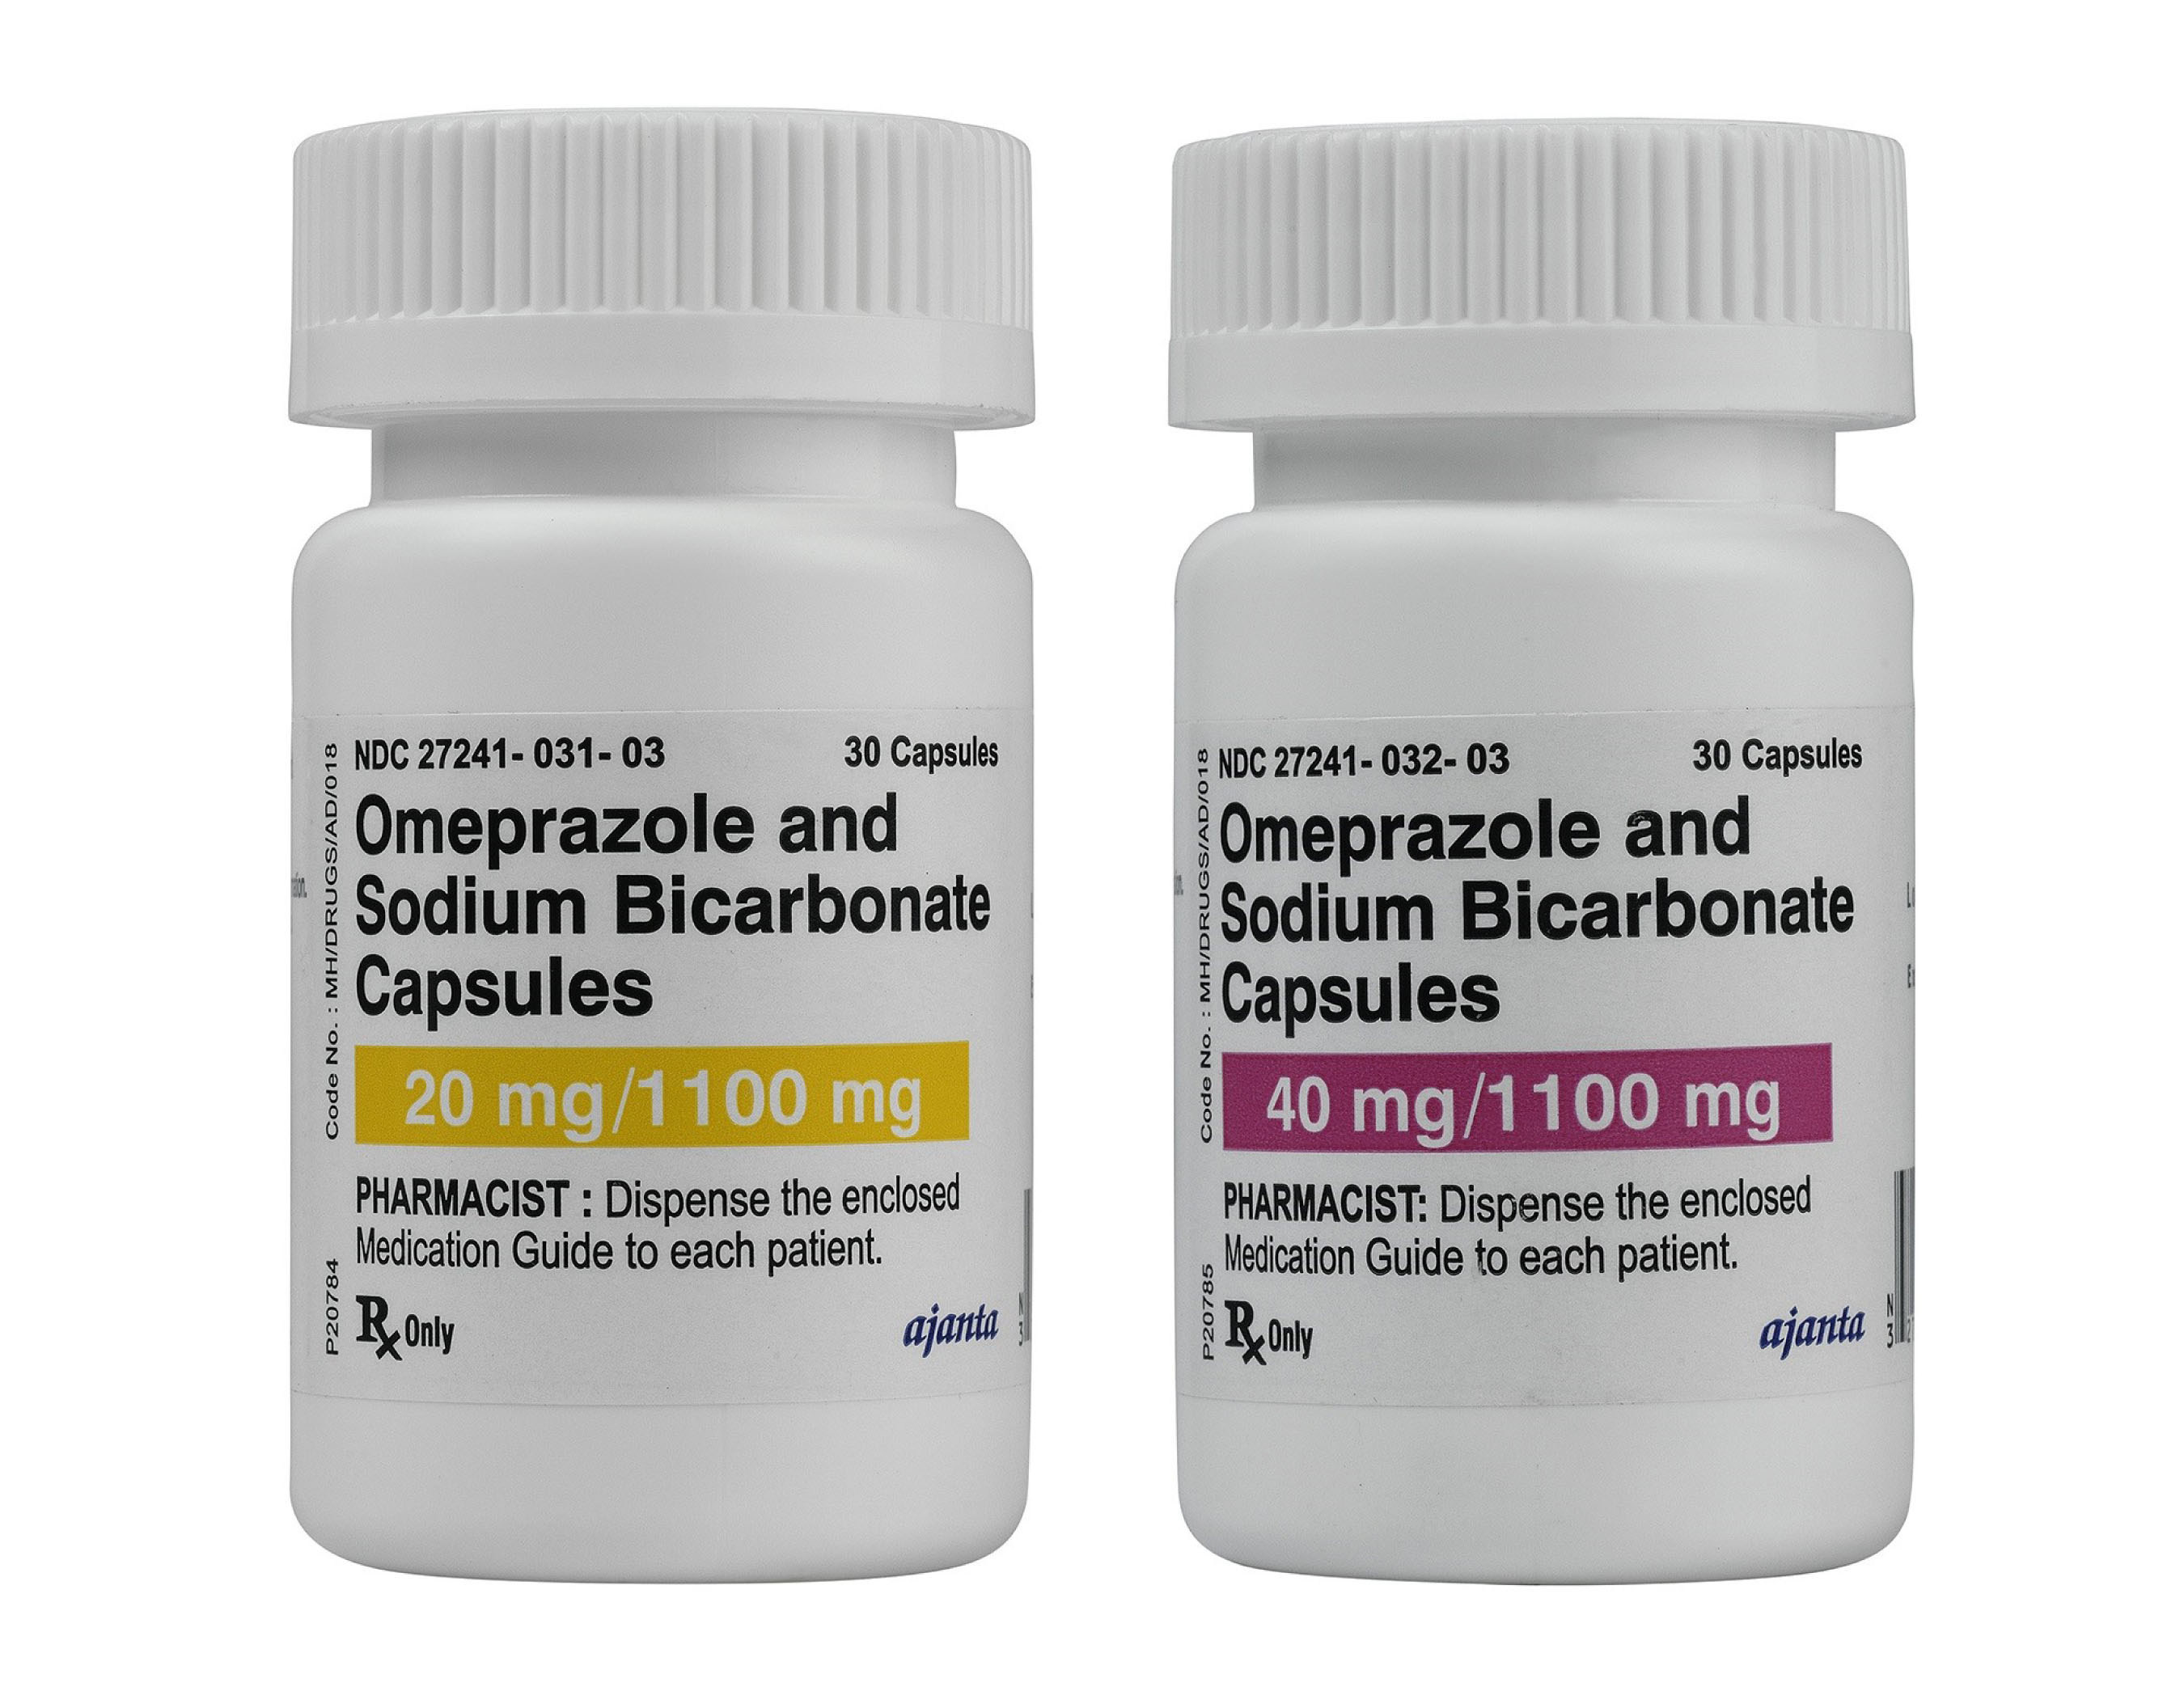 Ajanta Pharma Announces the Approval and Launch of Omeprazole and Sodium Bicarbonate Capsules